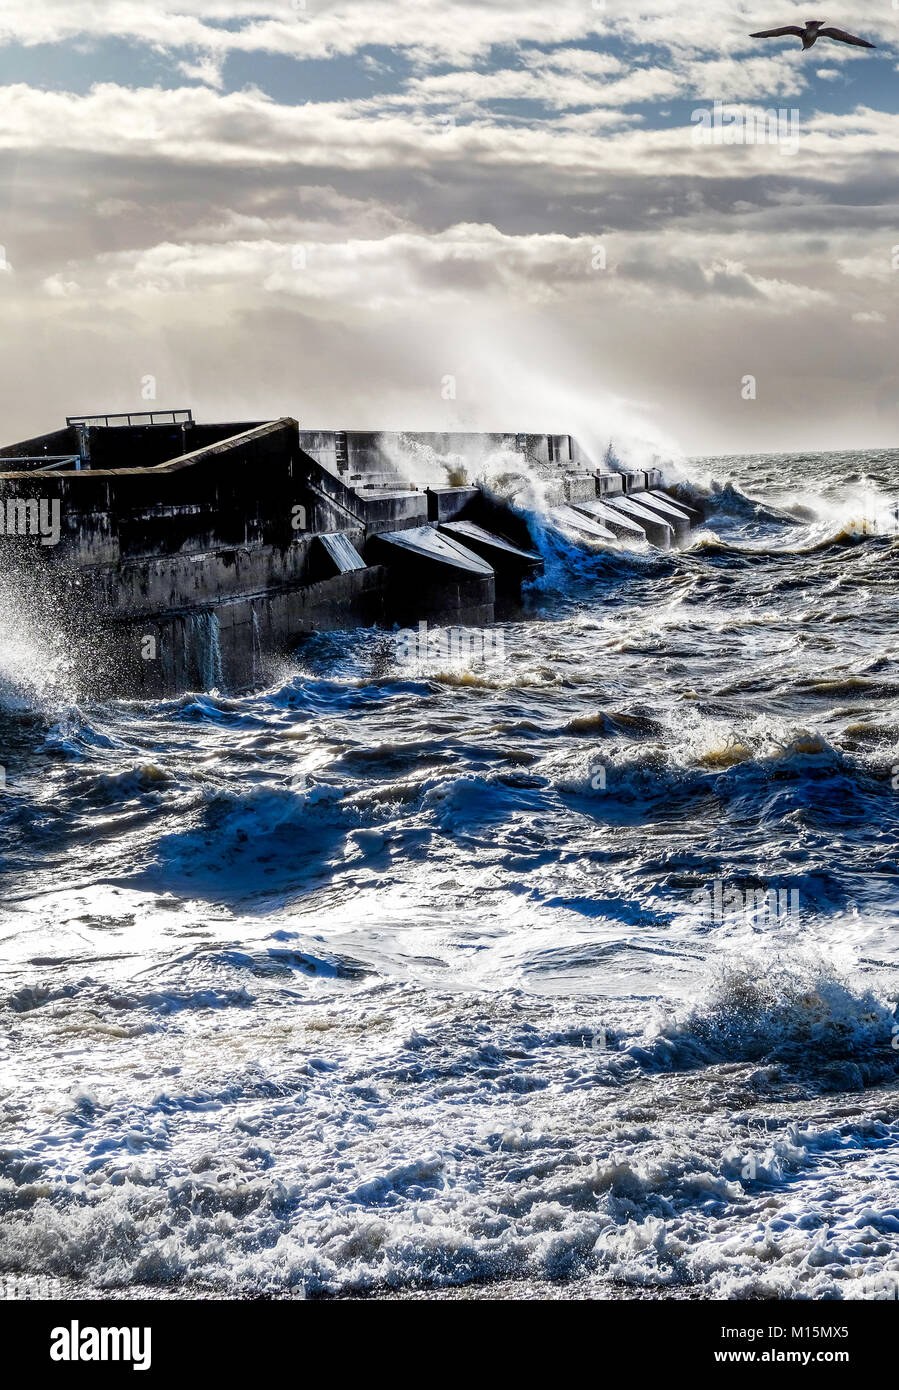 Dramatic stormy sea breaking against brighton marina black harbour wall, spray and waves high in the air, rough - Stock Image